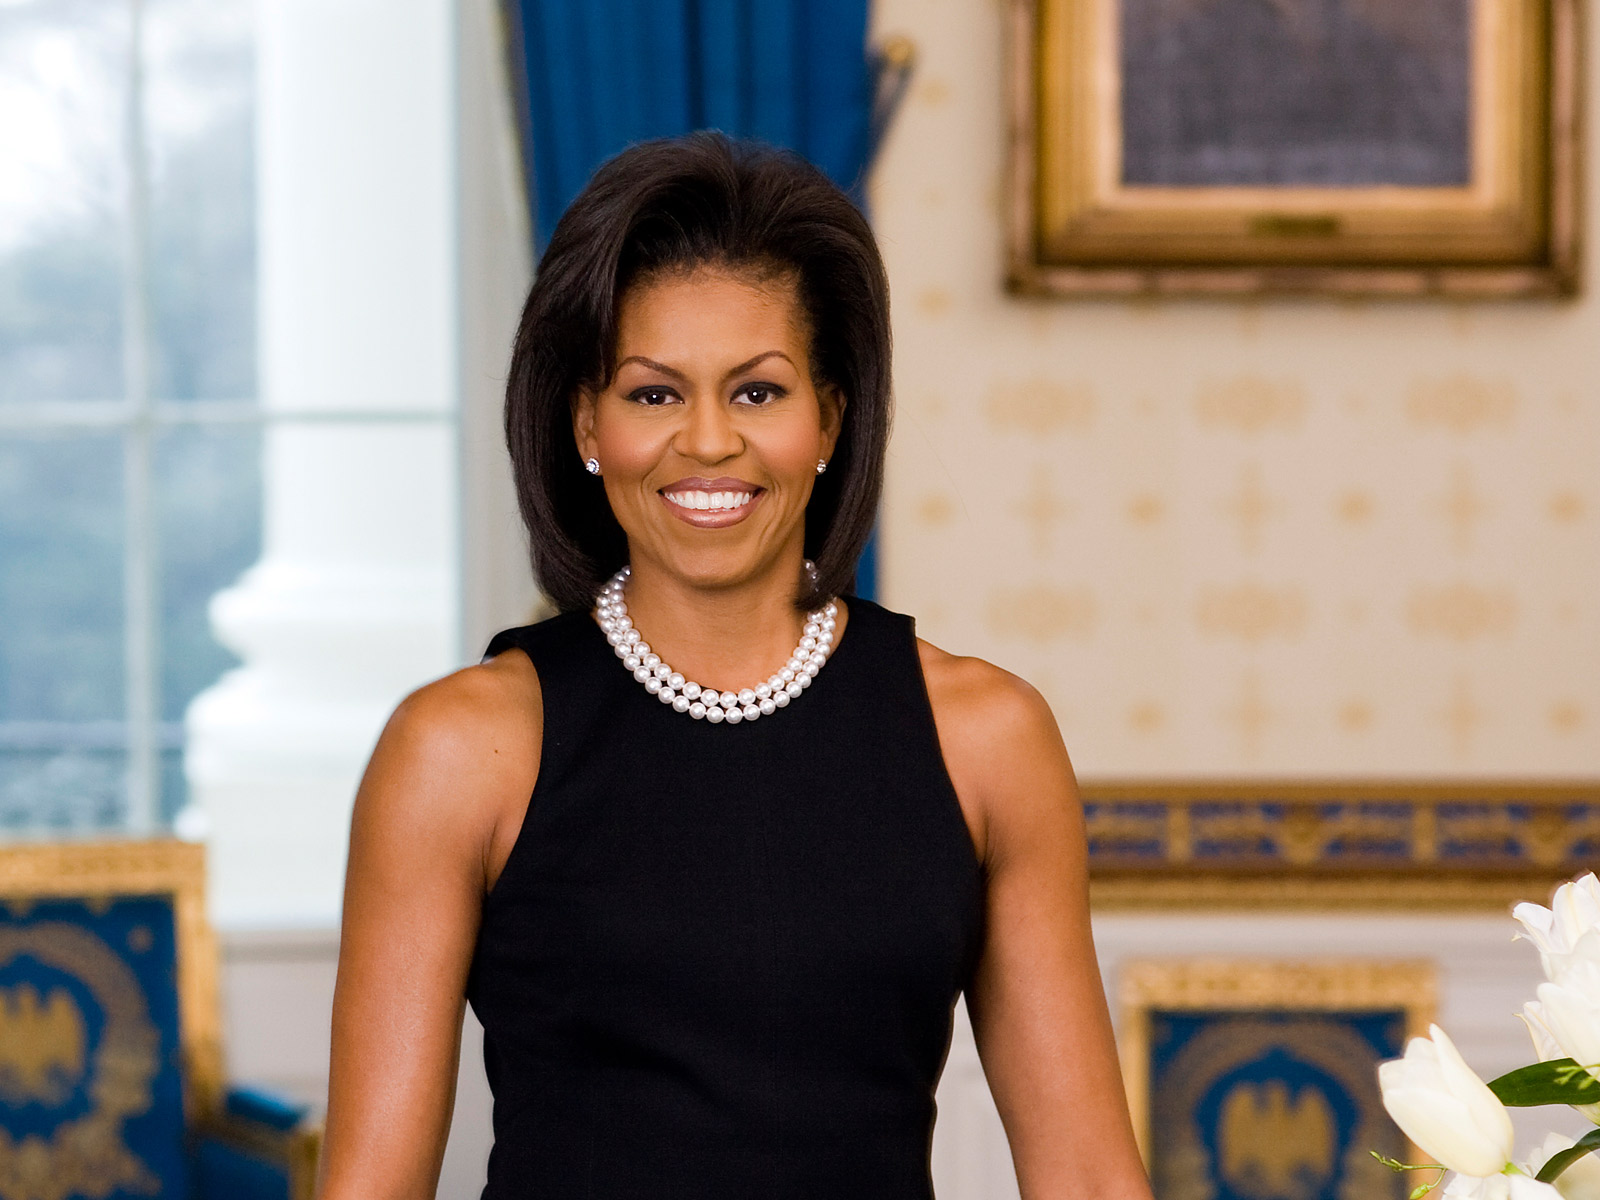 http://4.bp.blogspot.com/_m8fm6tkNThc/TH4ClHEzpBI/AAAAAAAAAjA/dgBRzHKPkA8/s1600/Michelle_Obama,_First_Lady.jpg